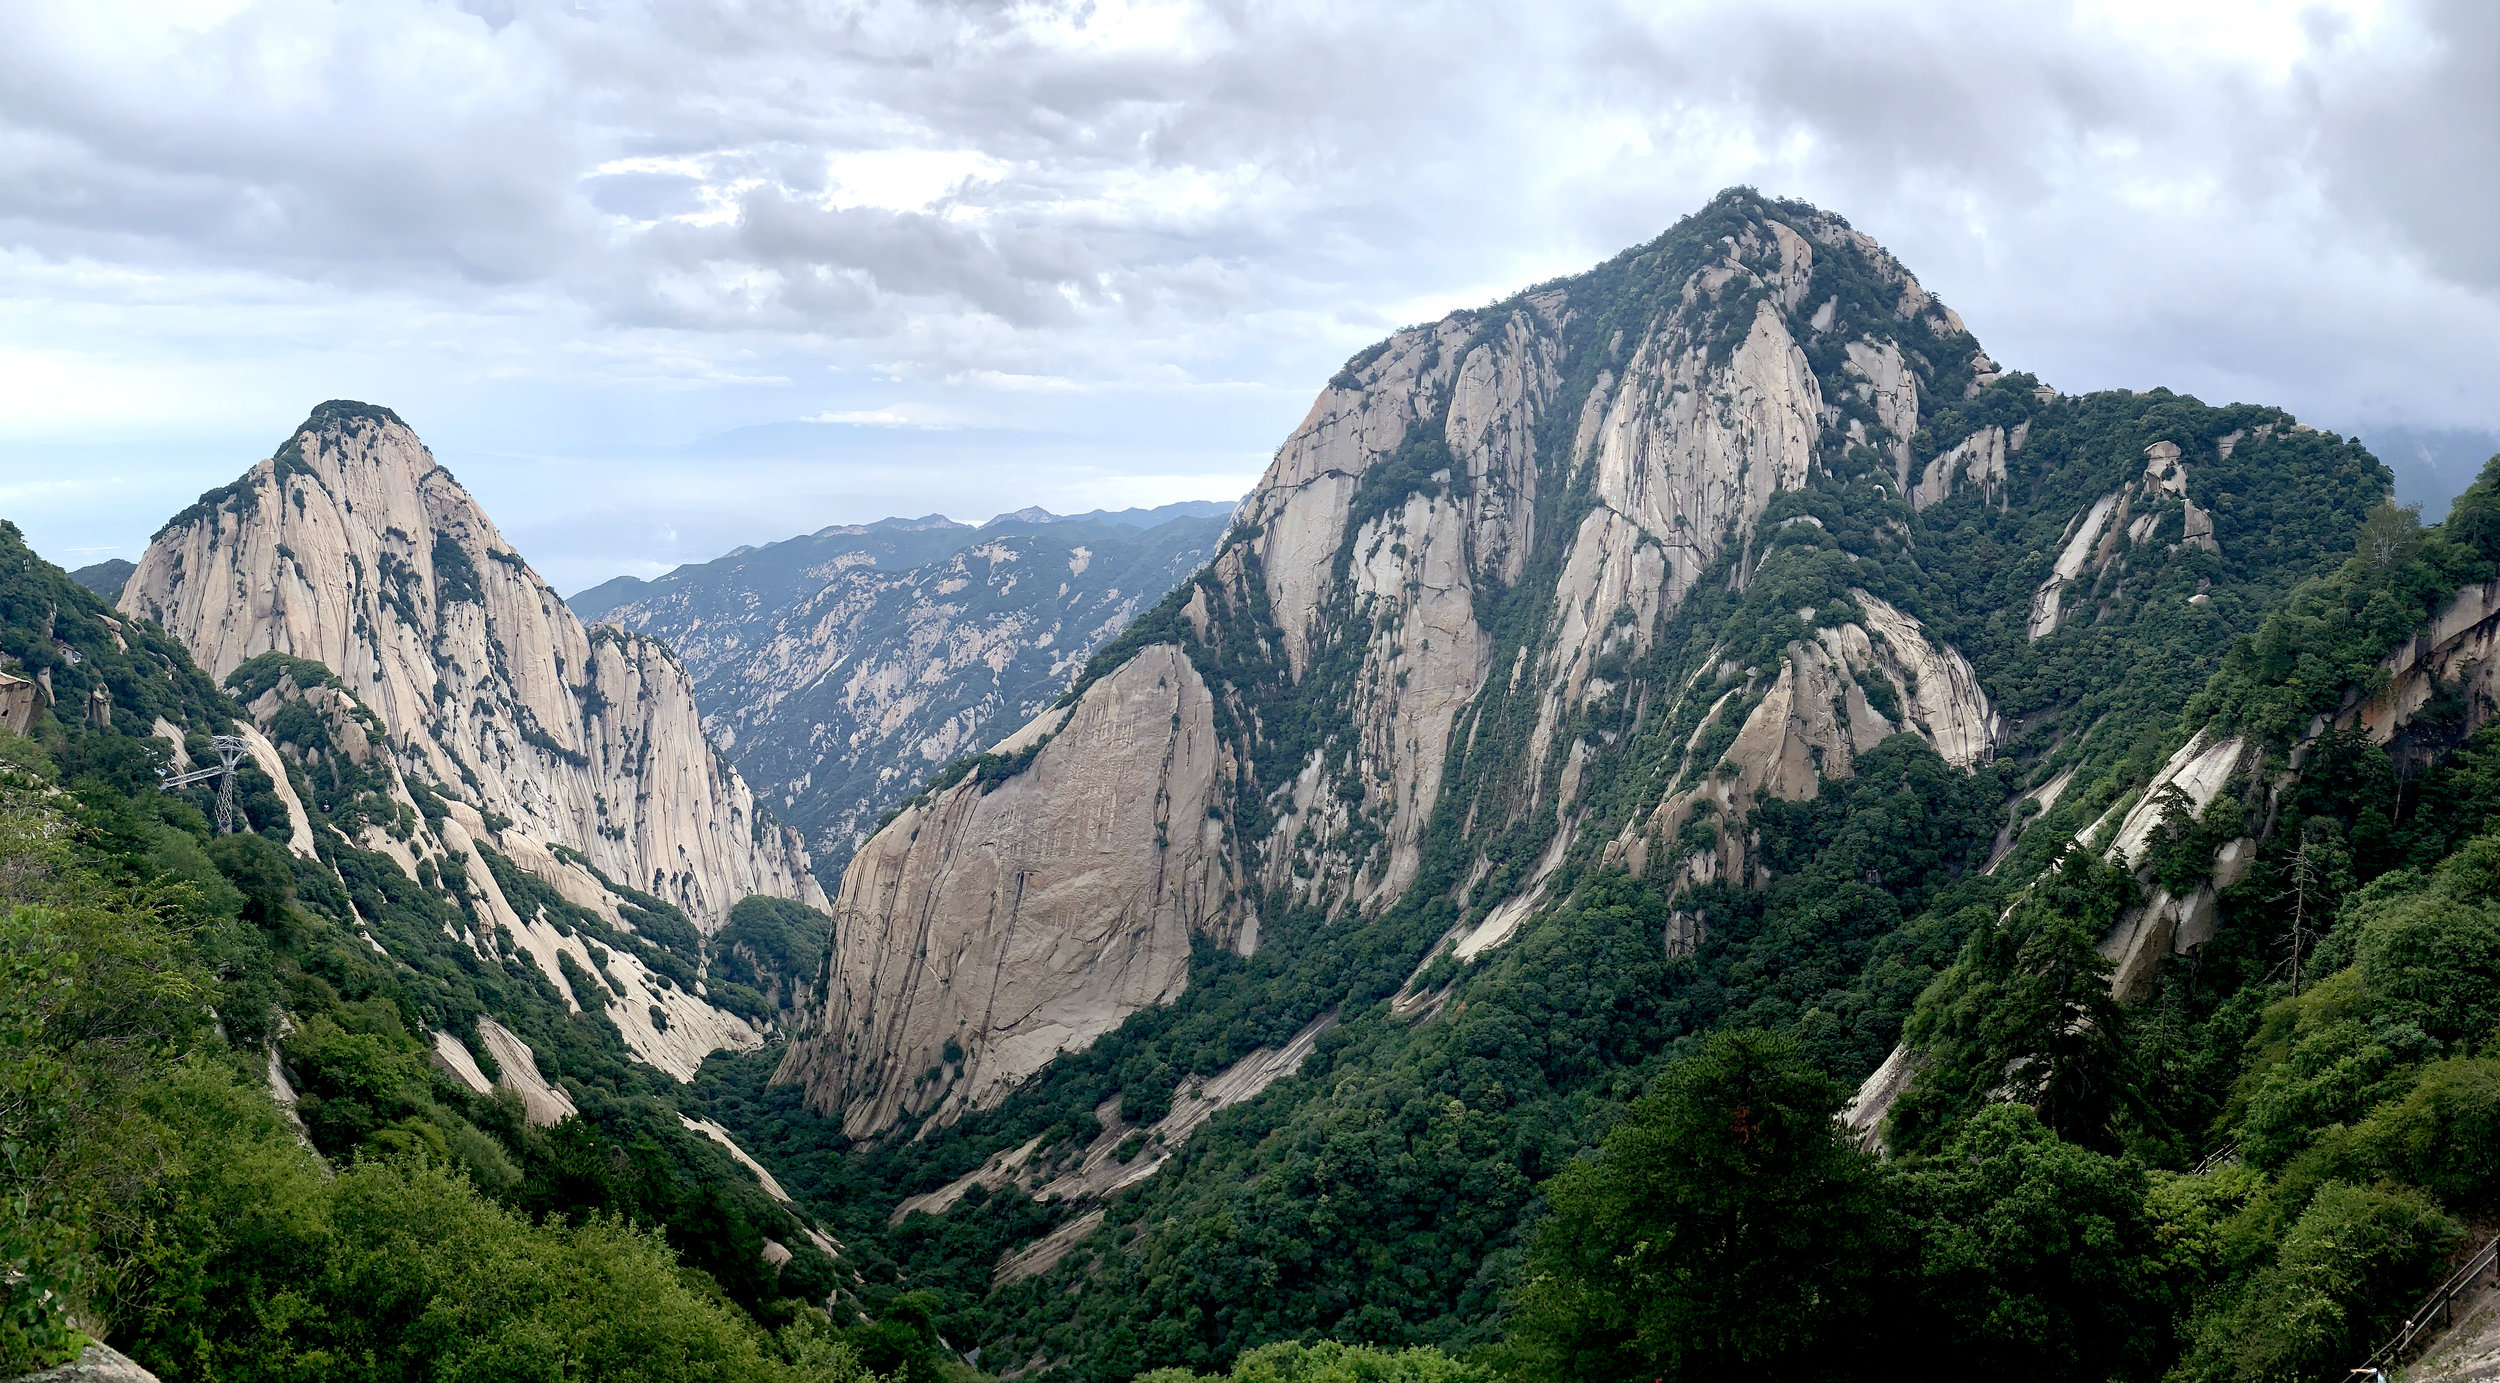 View of Huashan, but looks can be deceiving.